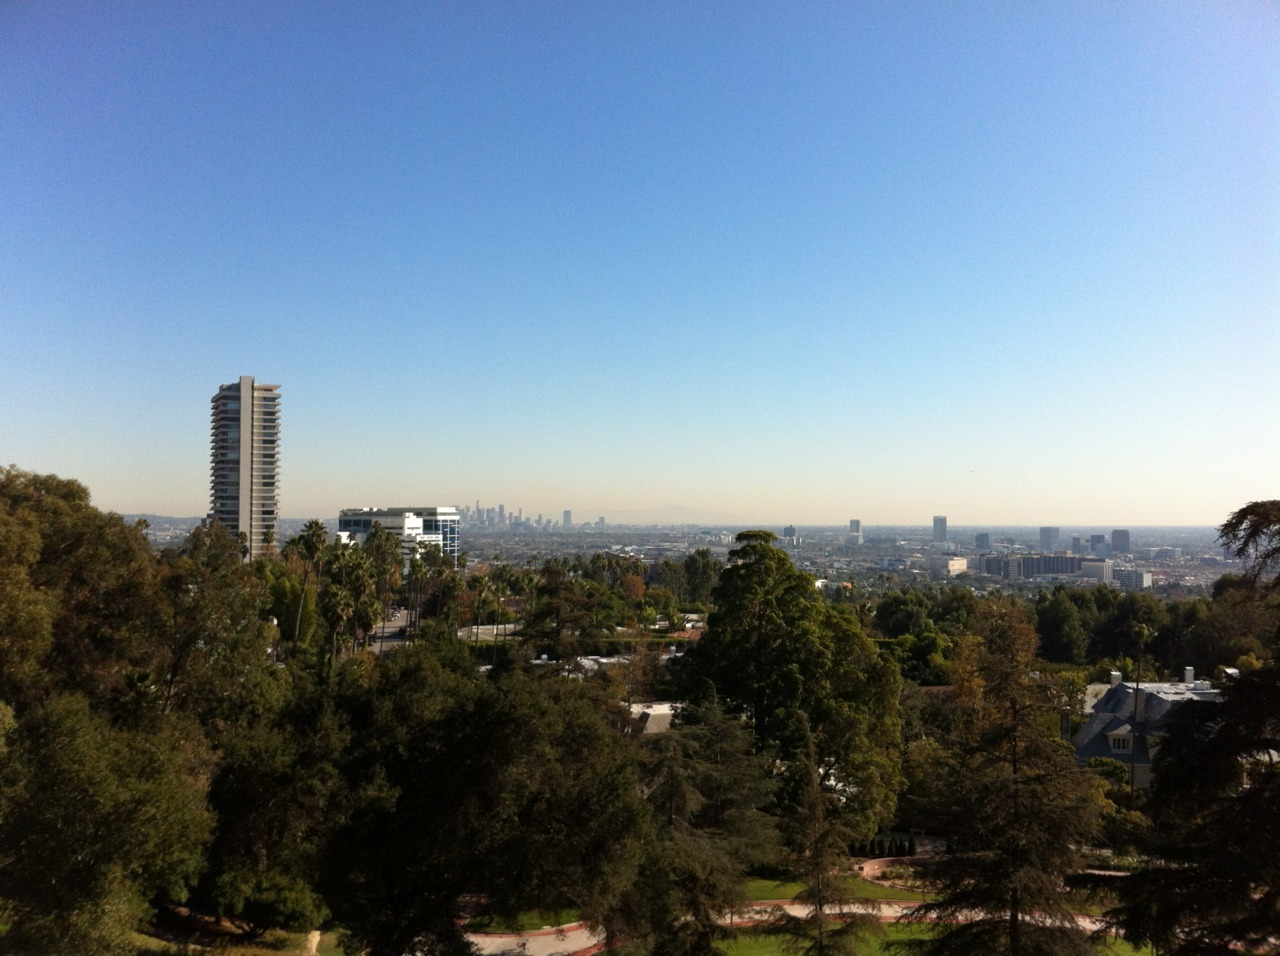 Lovely day in LA. (shot with my iPhone from Grey Stone park)